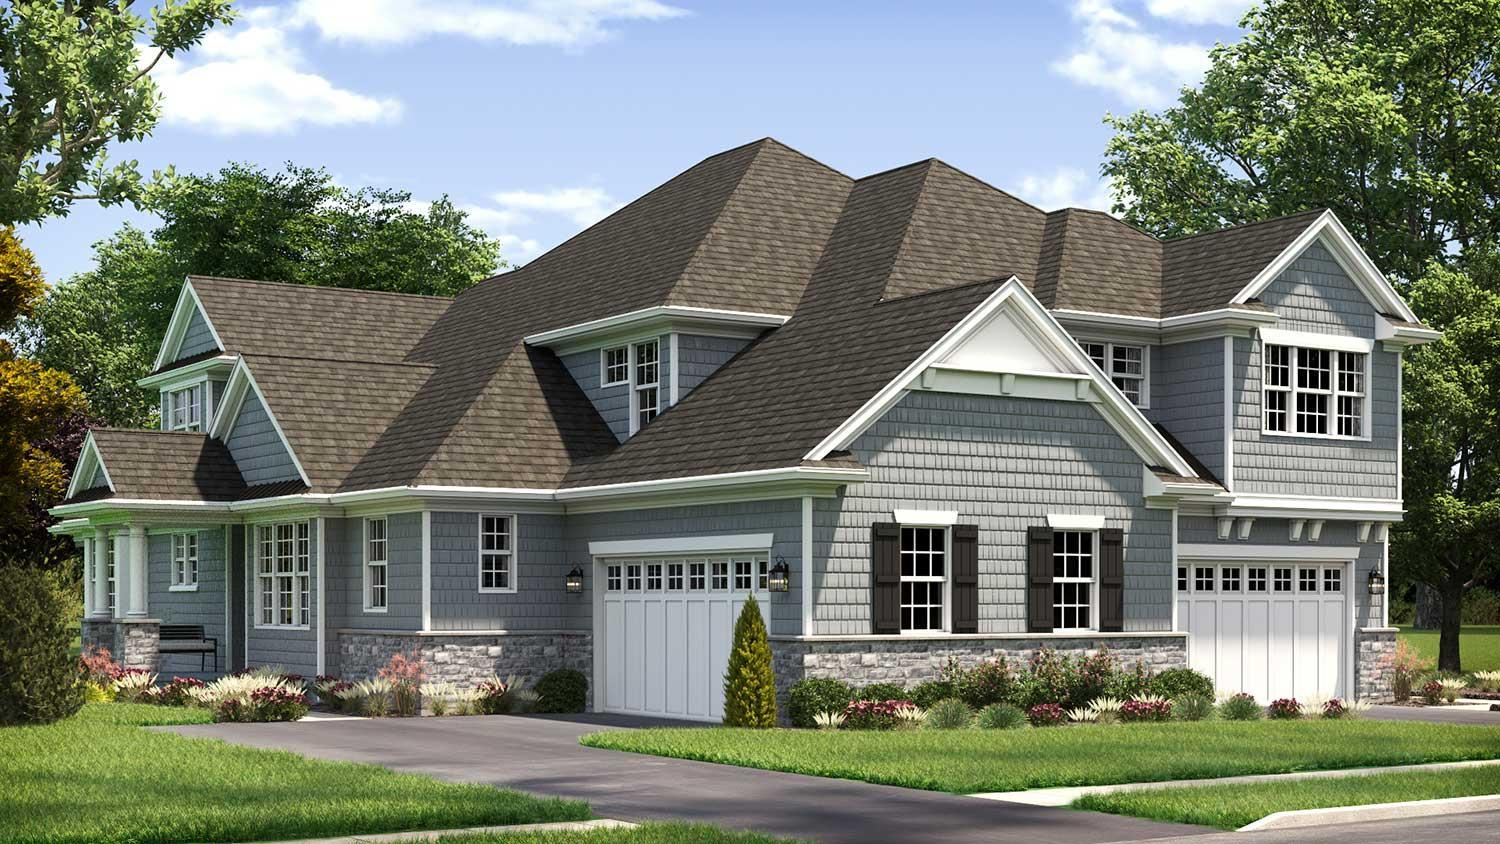 Single Family for Active at Hinsdale Meadows - Becket 502 Hannah Lane Hinsdale, Illinois 60521 United States